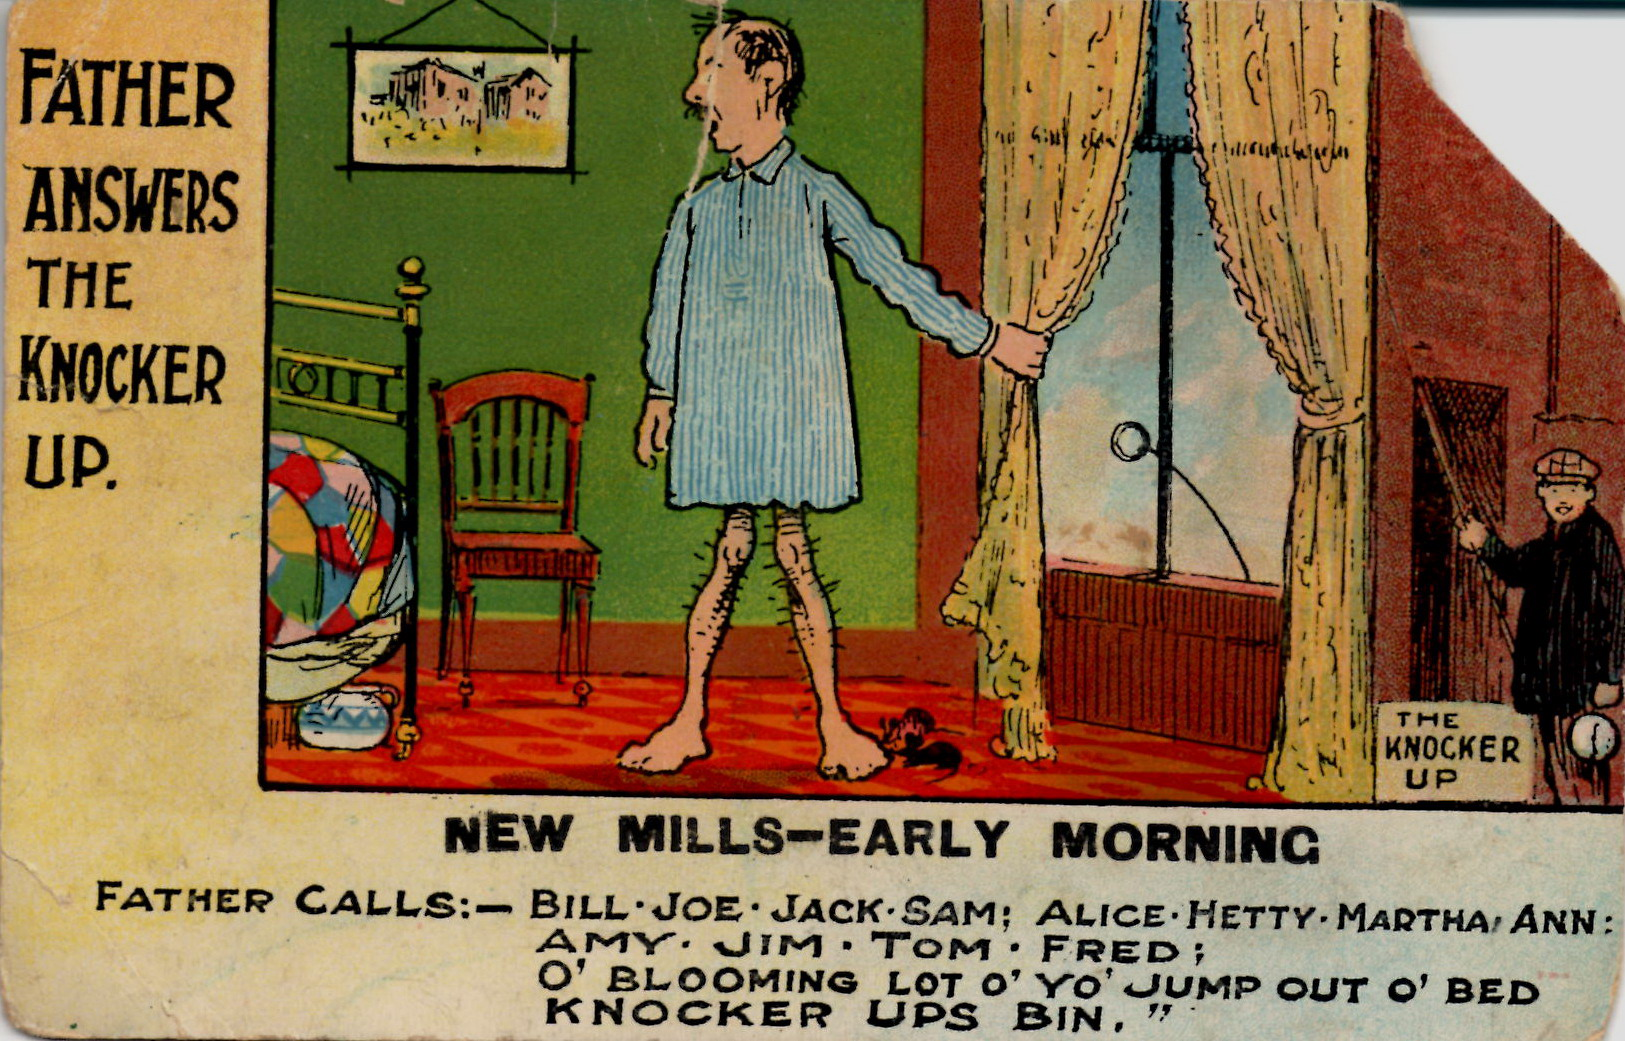 The only New Mills comedy postcard I've seen. Knocker up was a real job, sort of a human alarm clock.